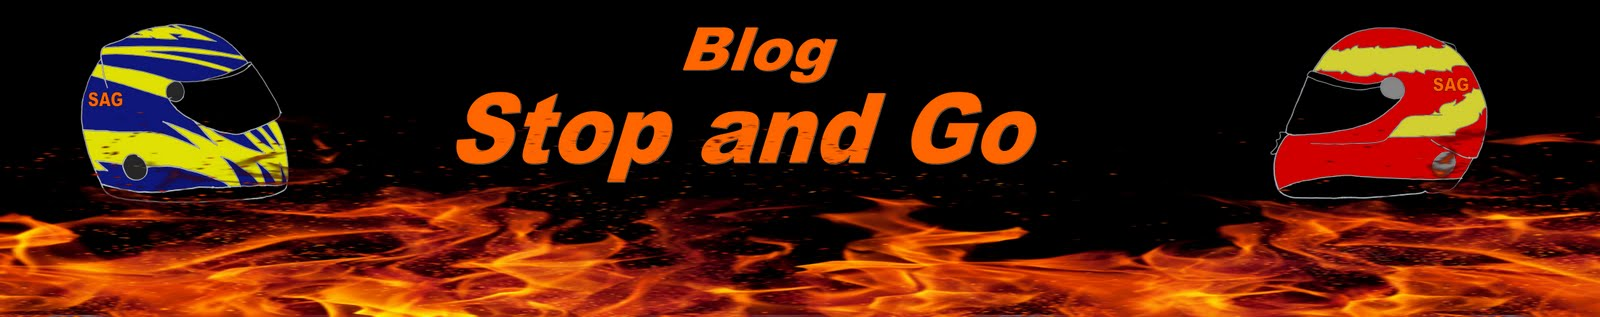 Blog Stop and Go - 3ª Temporada